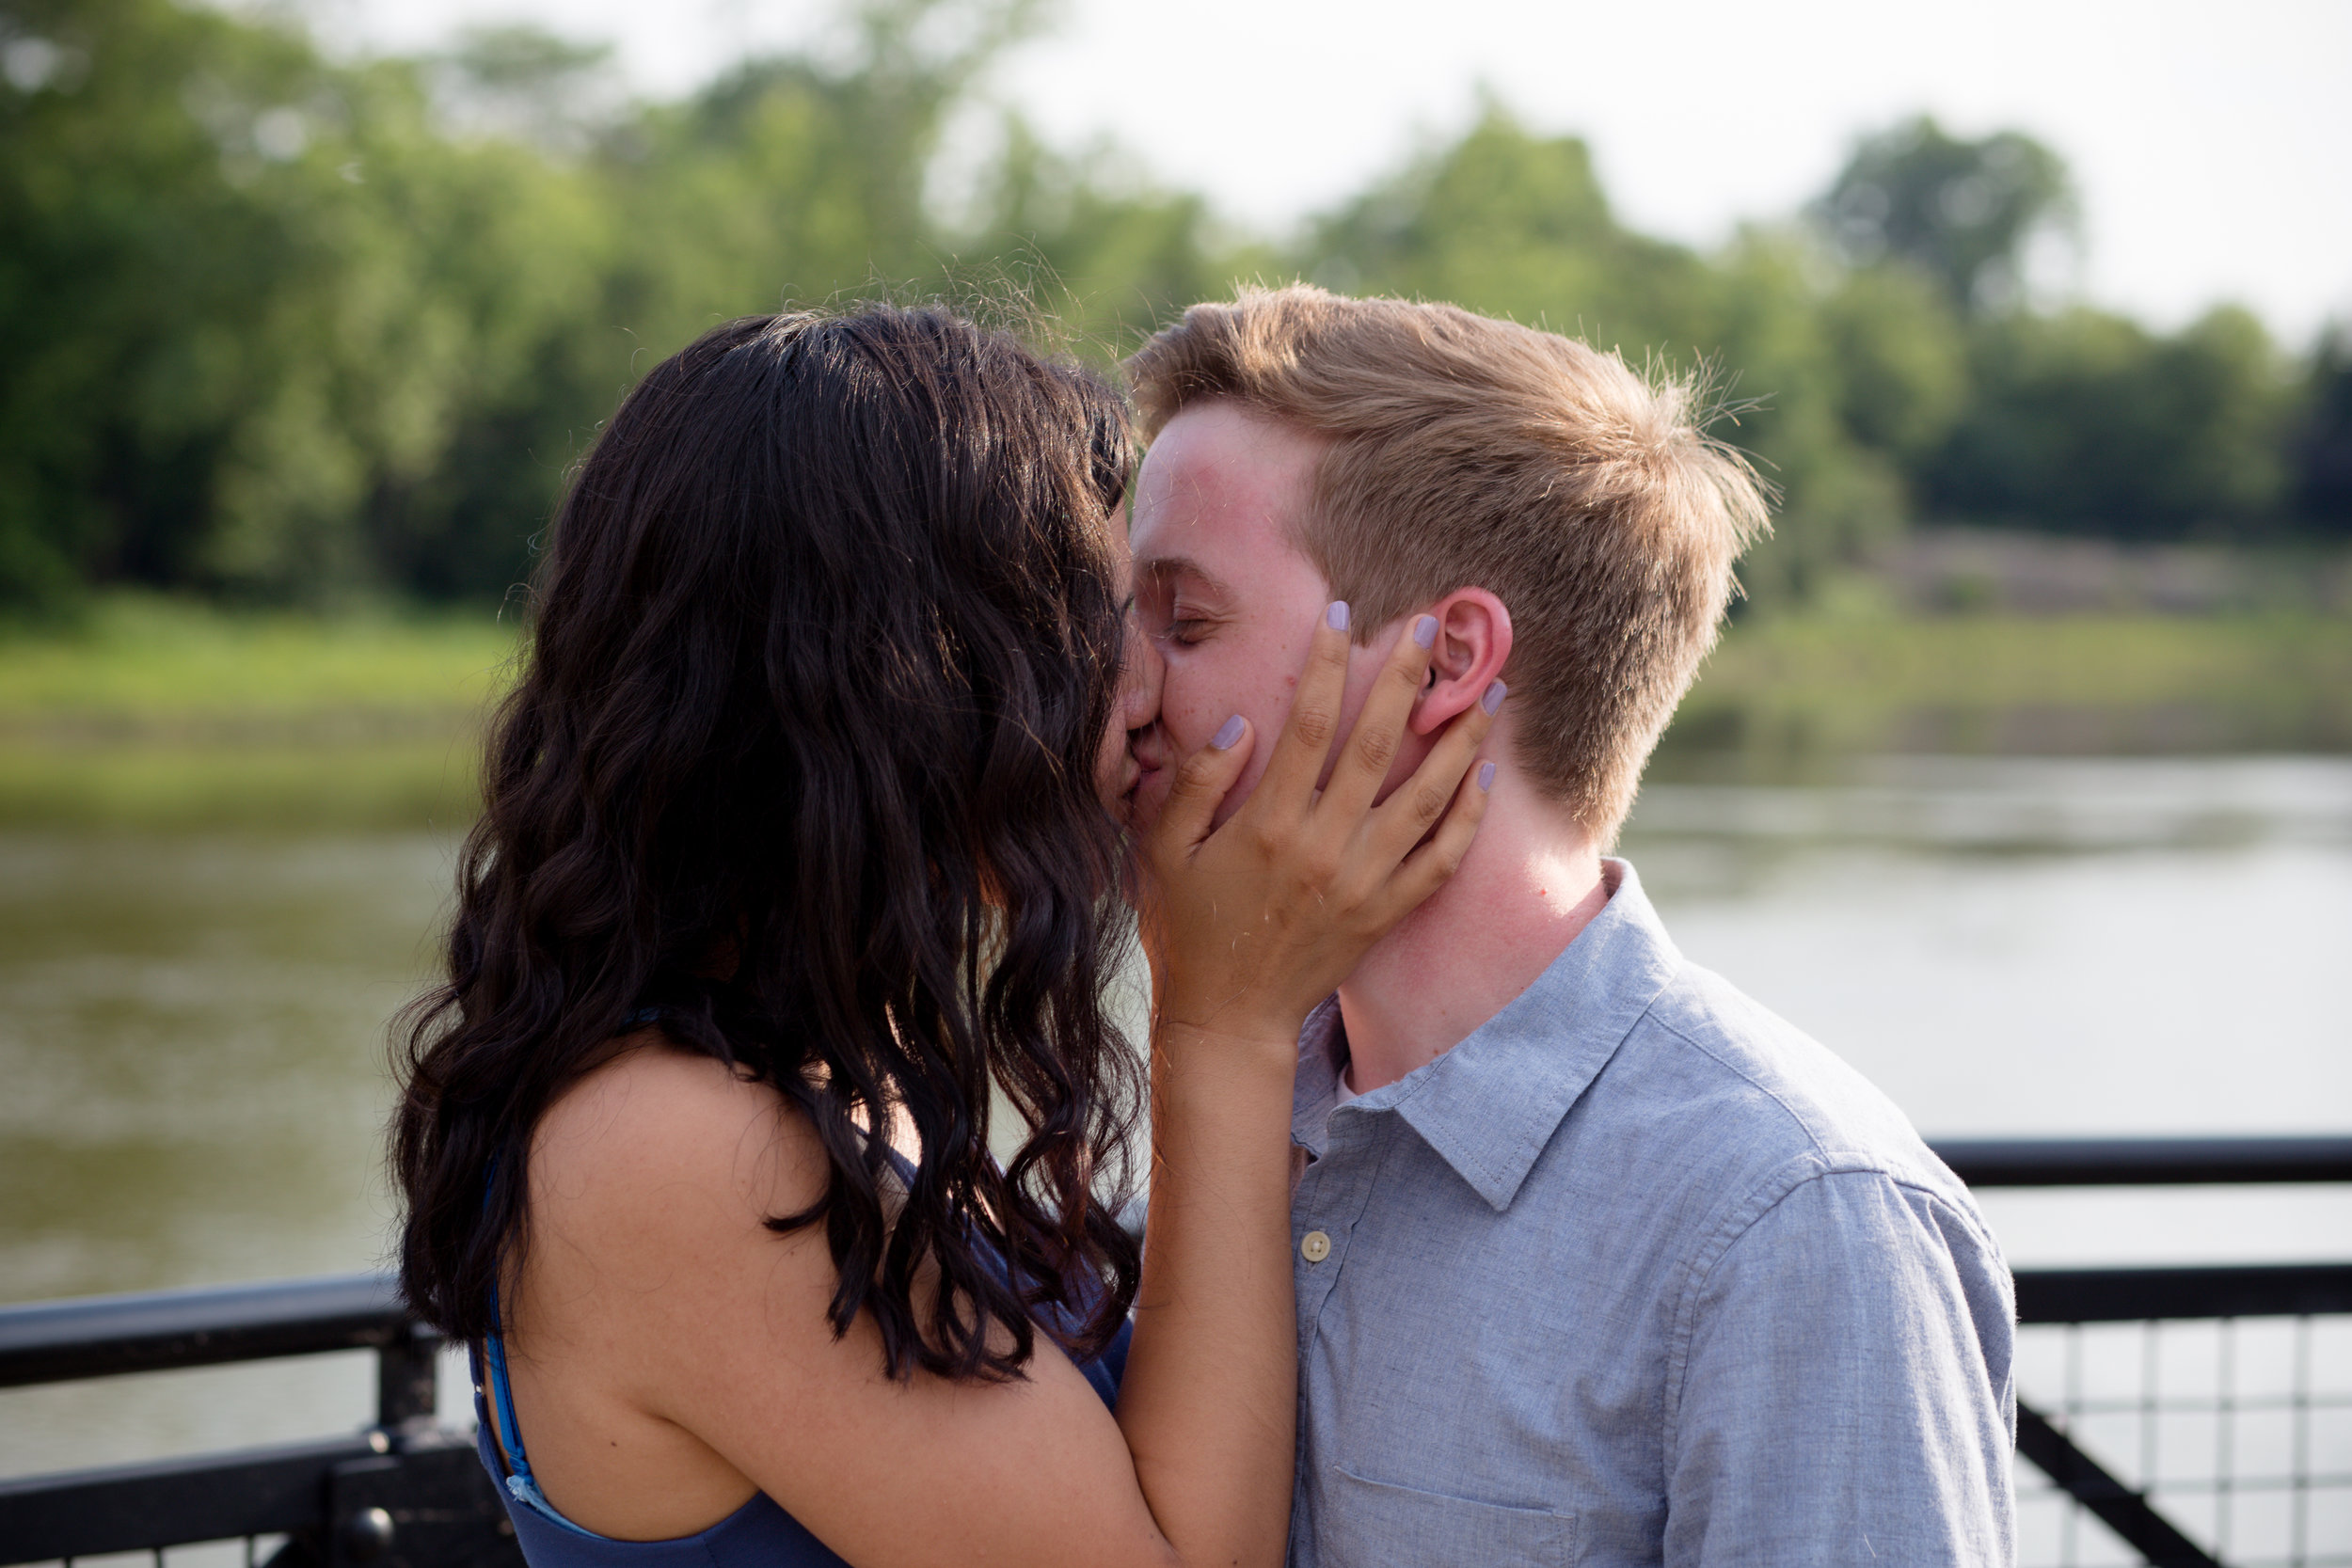 proposal photos, engagement moment pictures, down on one knee, she said yes, pop the question, columbus ohio wedding photographers